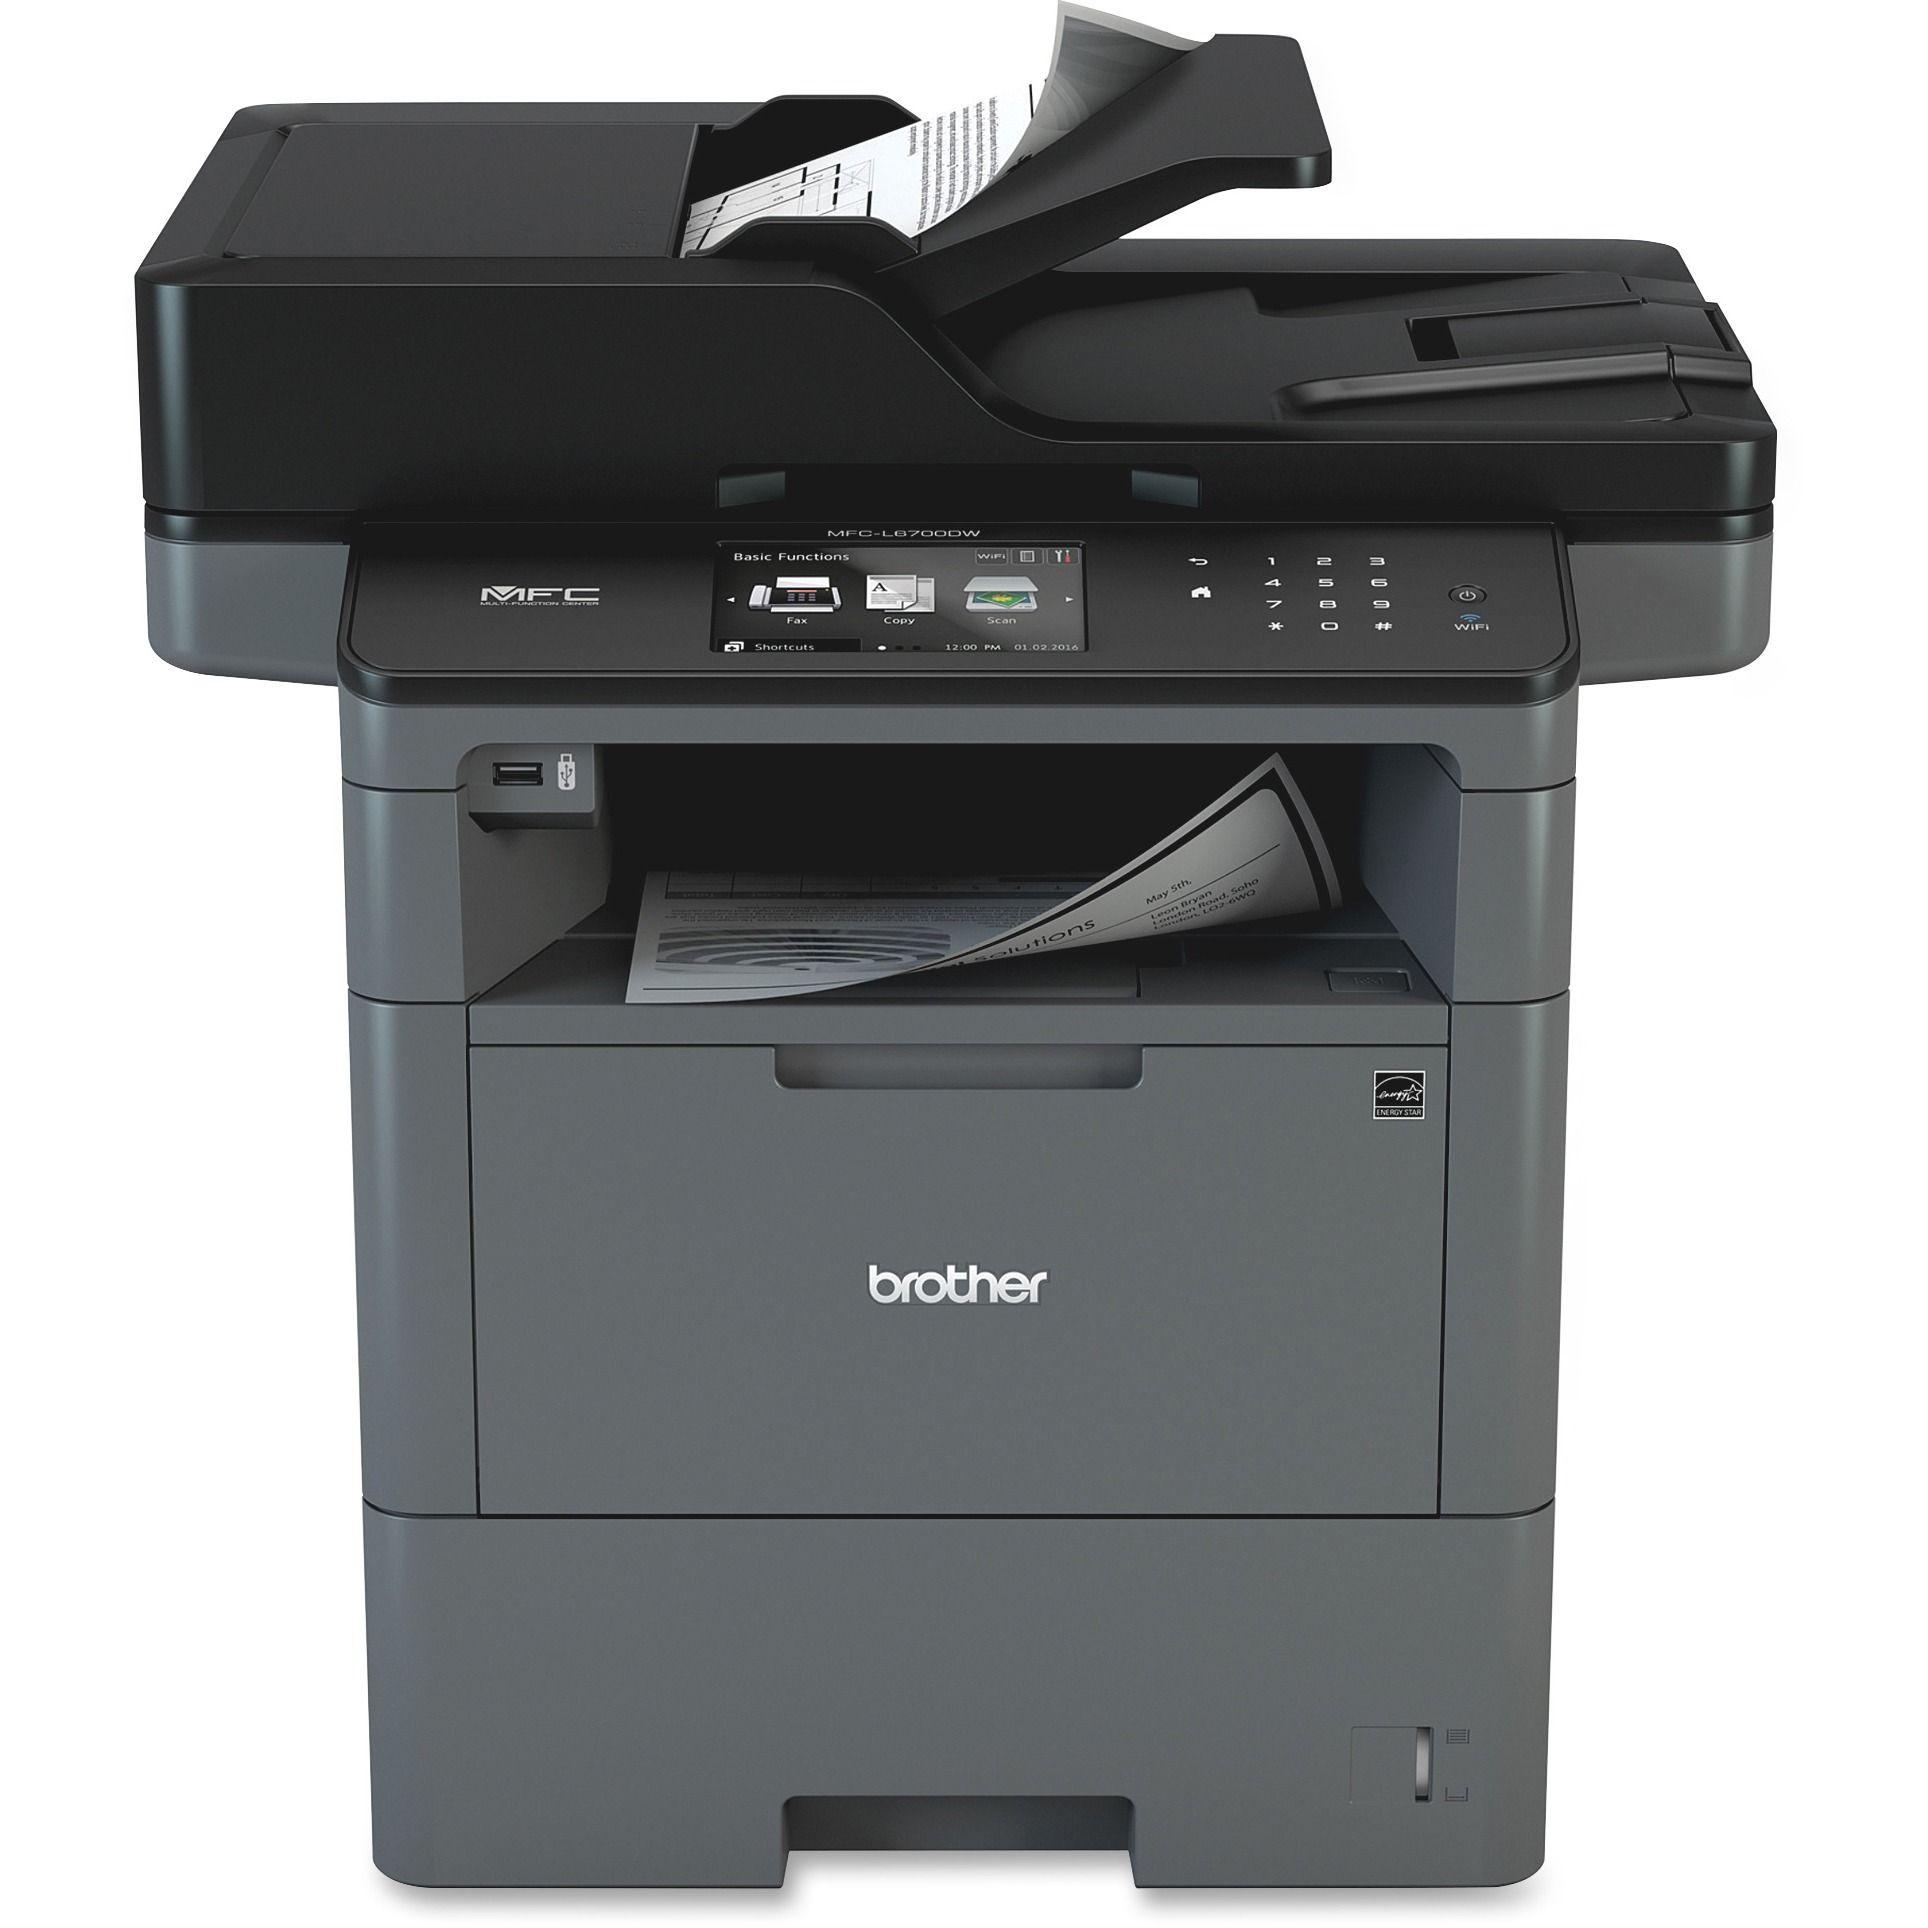 Brother MFC-L6700DW Laser Multifunction Printer Monochrome Duplex by Brother